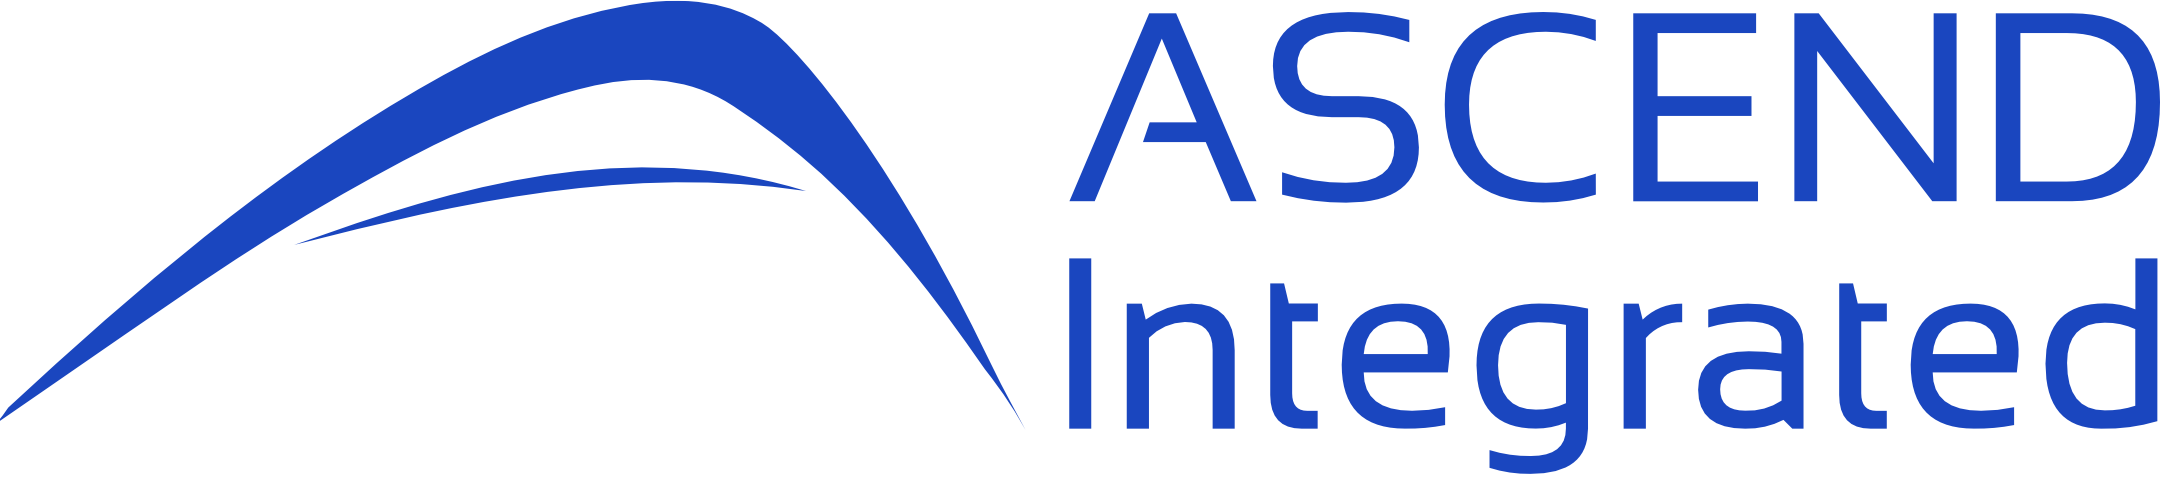 Ascend Integrated Announces New CTO to Drive Innovation